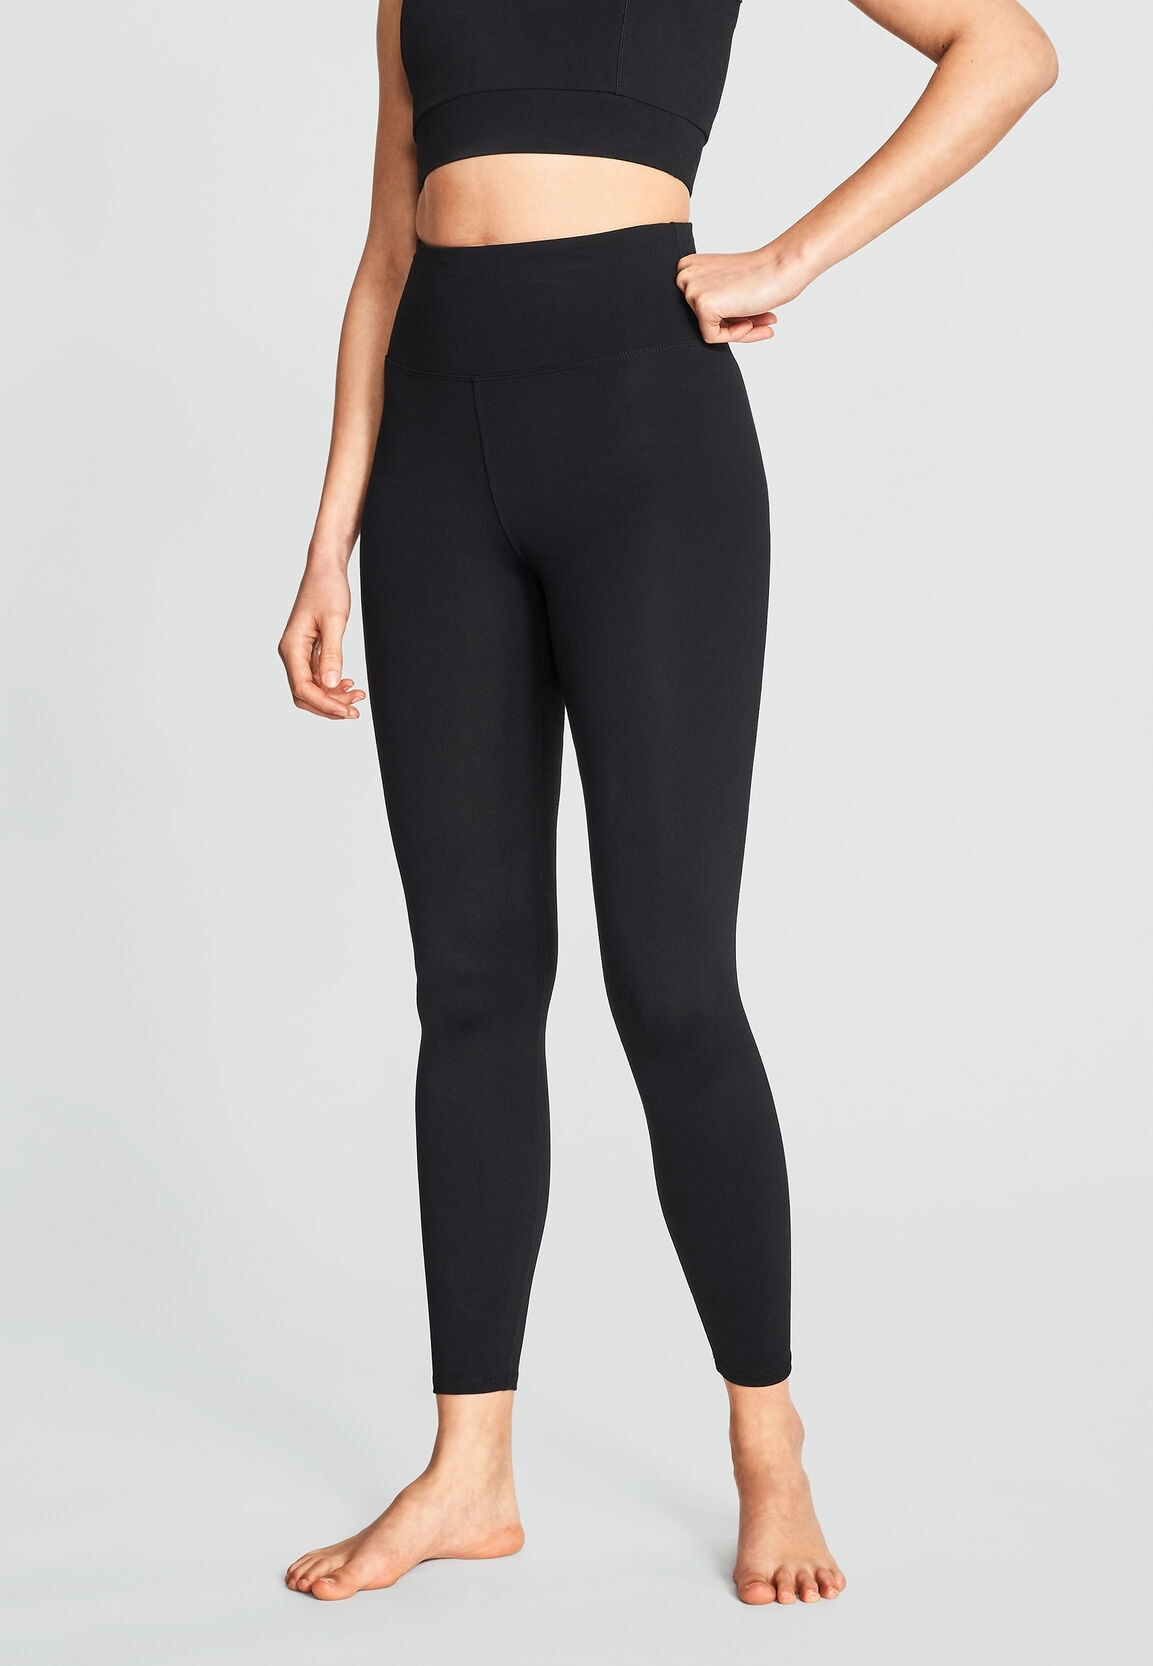 Röhnisch Nora Lasting High Waist Tights Dame Sort